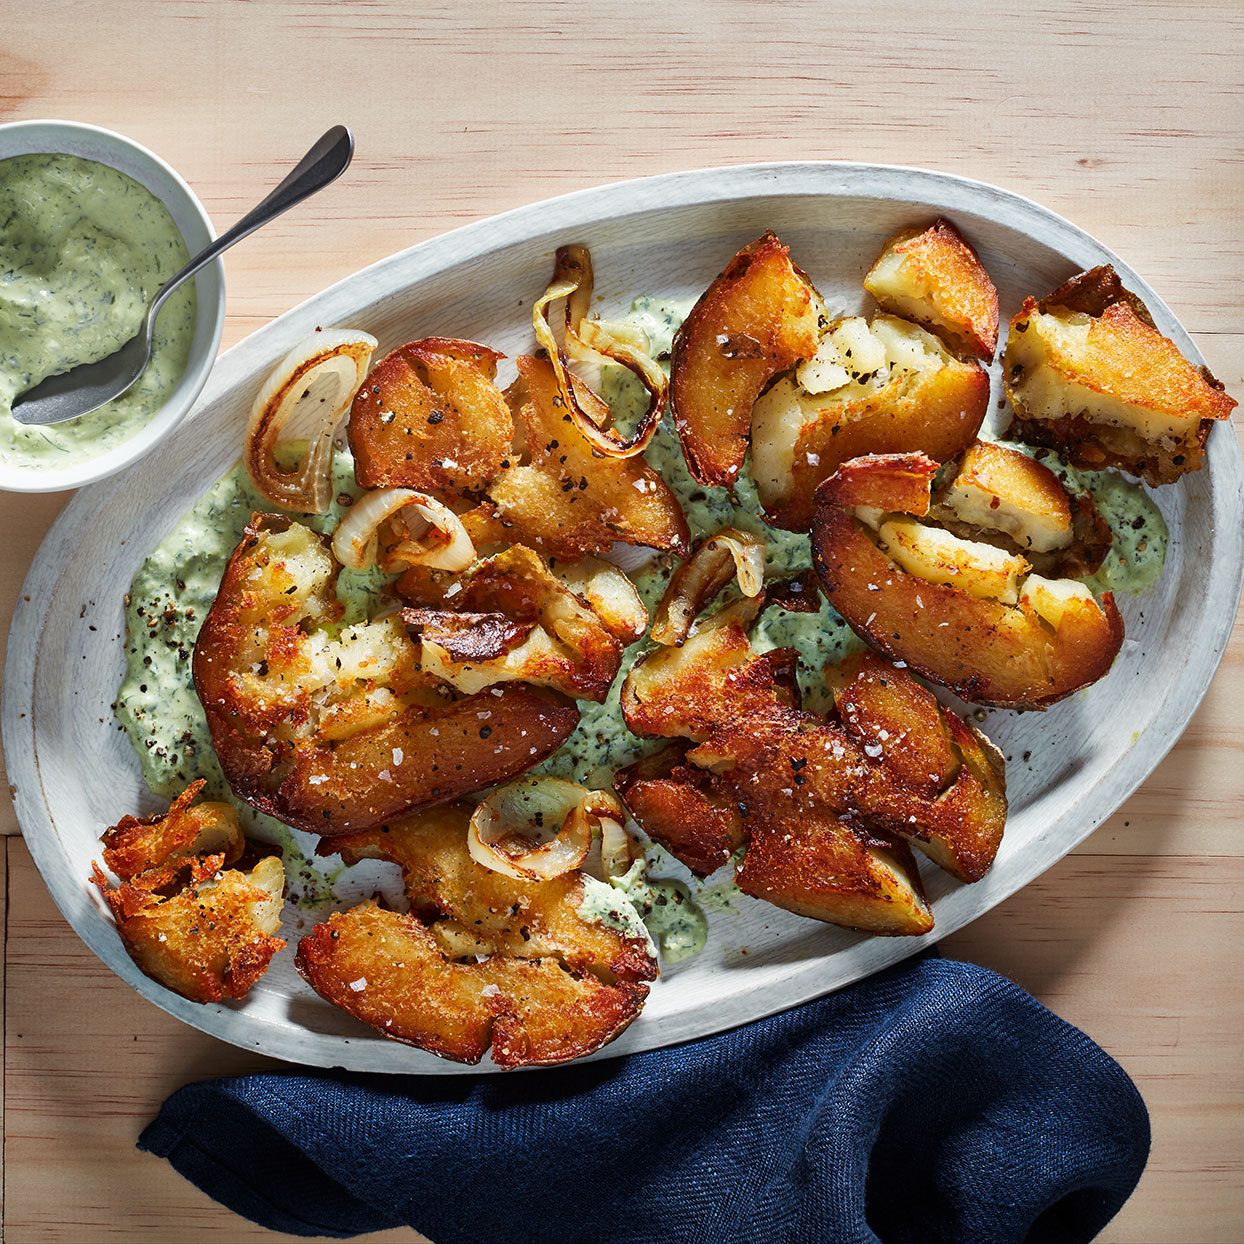 Crispy Smashed Potatoes with Green Horseradish Sauce Amy Thielen